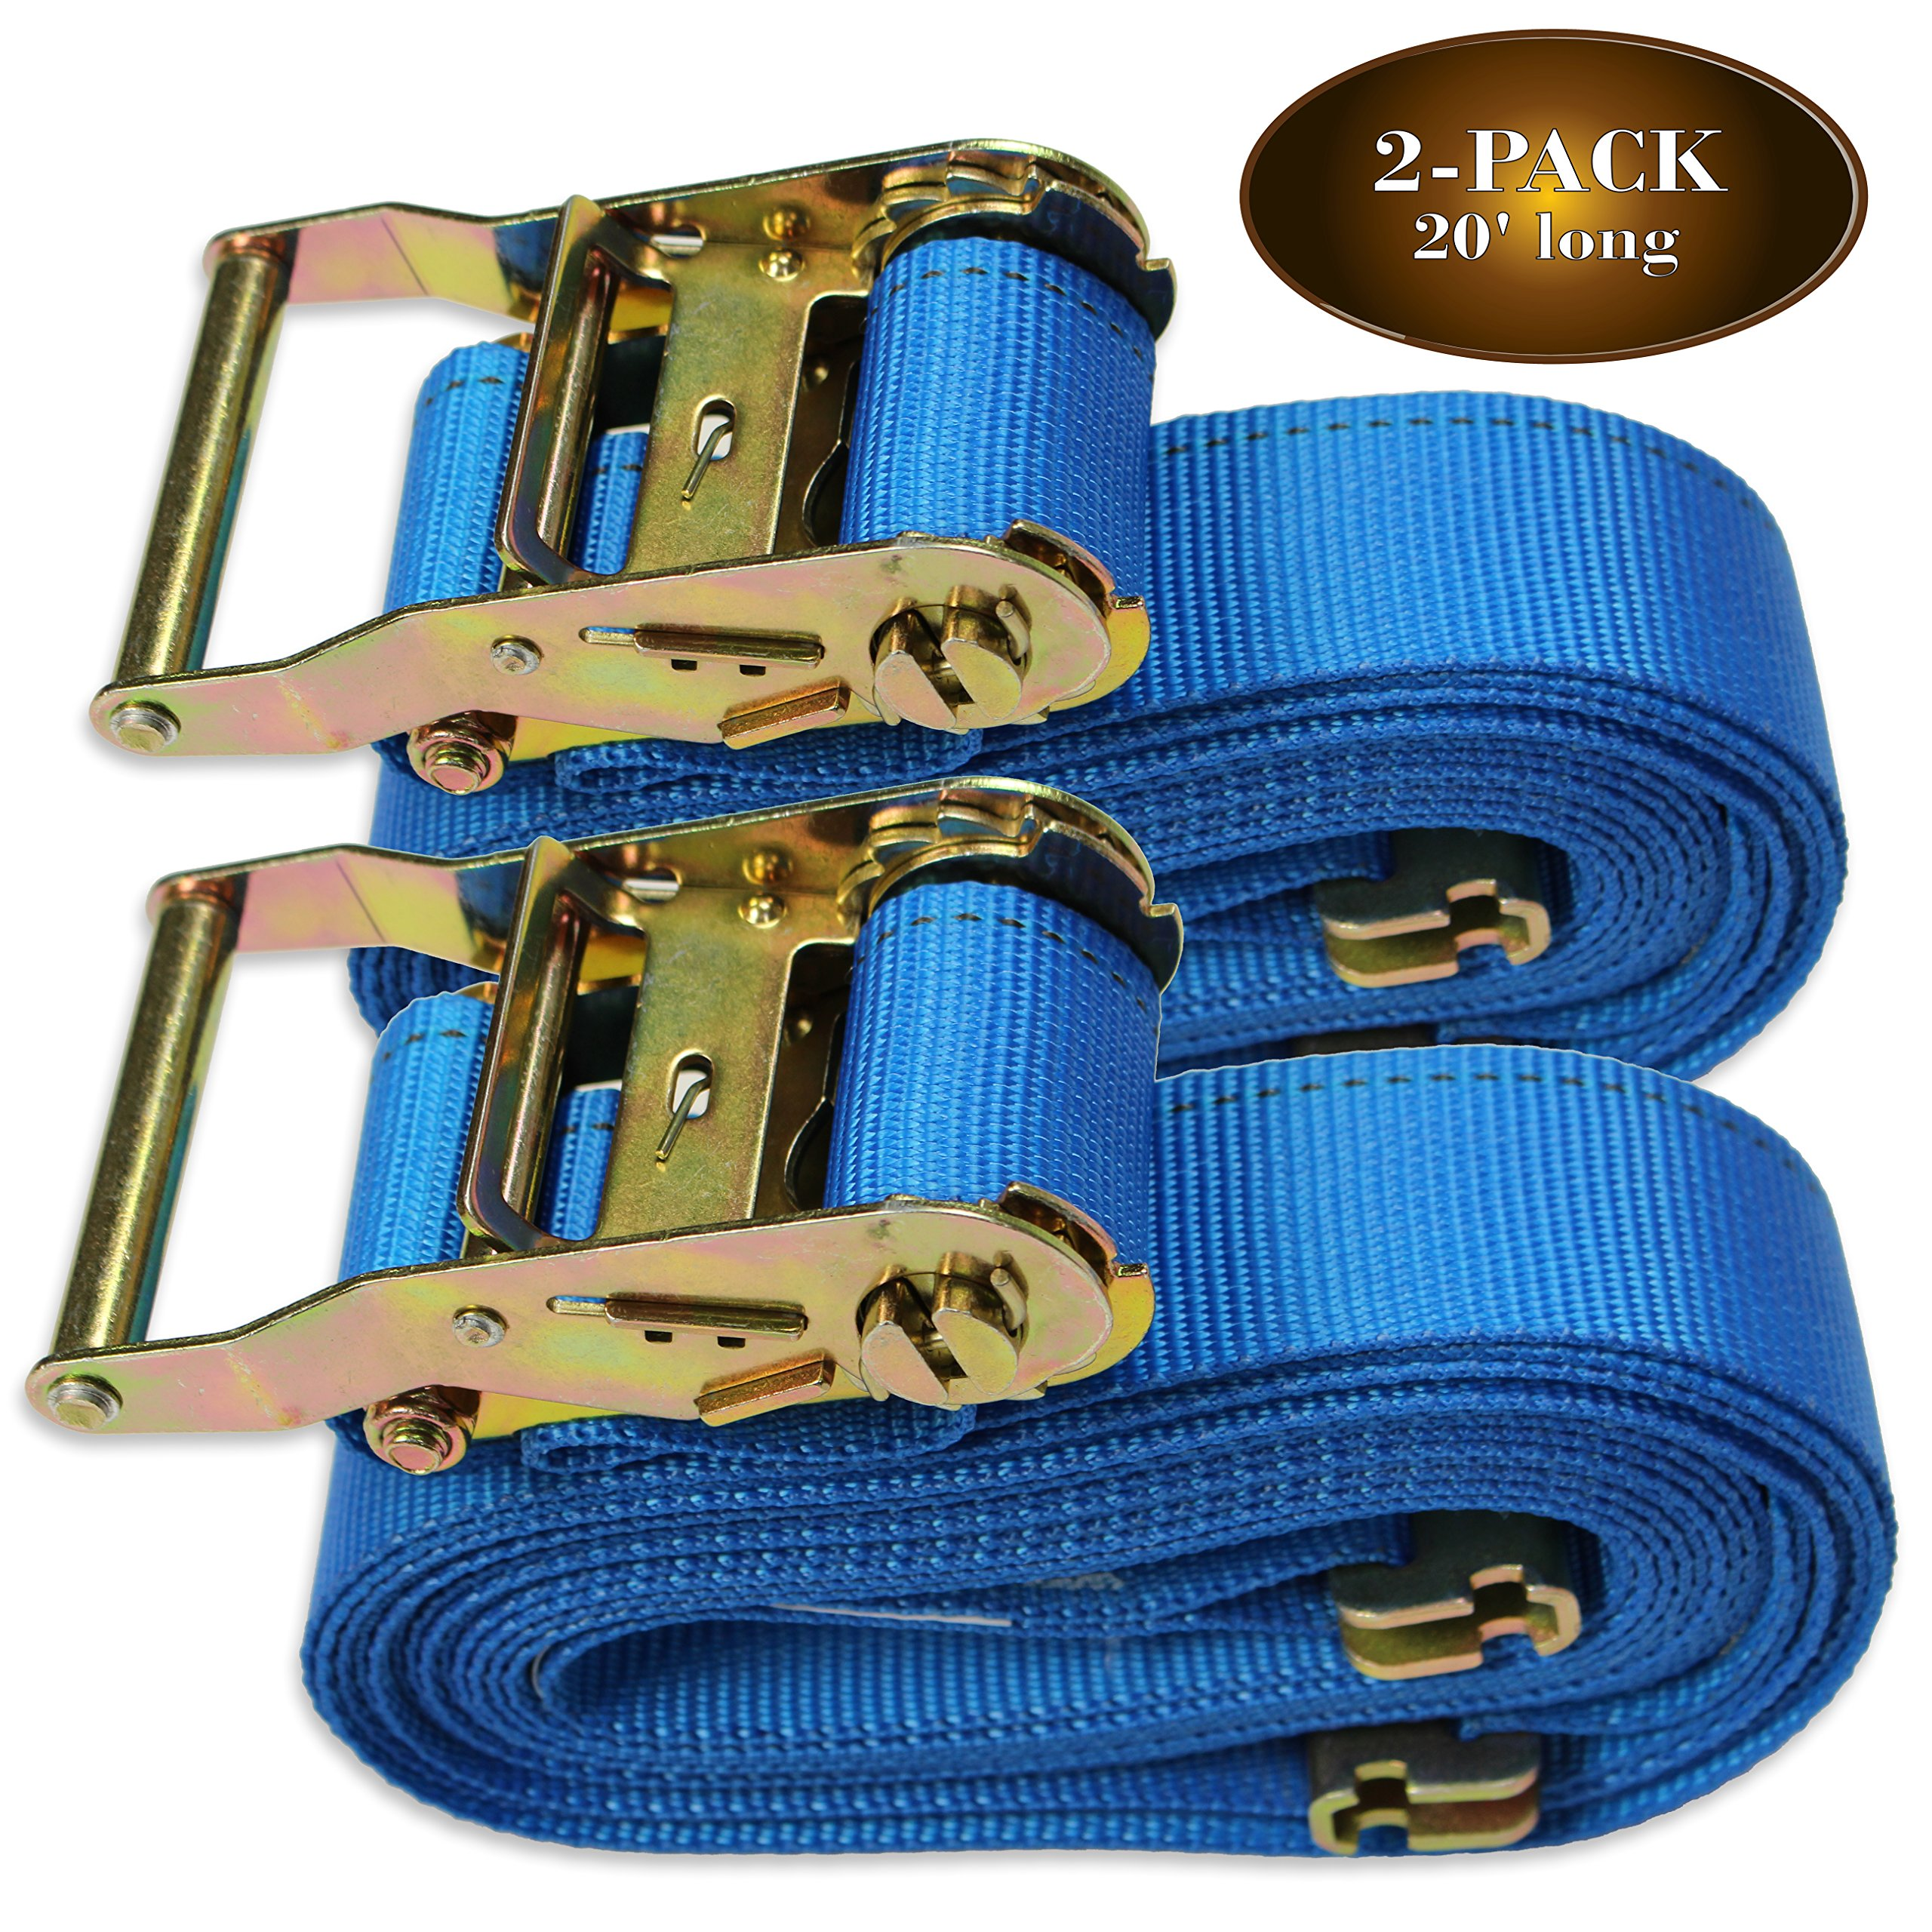 TWO 2'' x 20' E Track Ratcheting Strap Heavy Duty Cargo TieDowns, Durable Blue Polyester Tie-Down Ratchet Straps, ETrack Spring Fittings, Tie Down Motorcycles, Trailer Loads